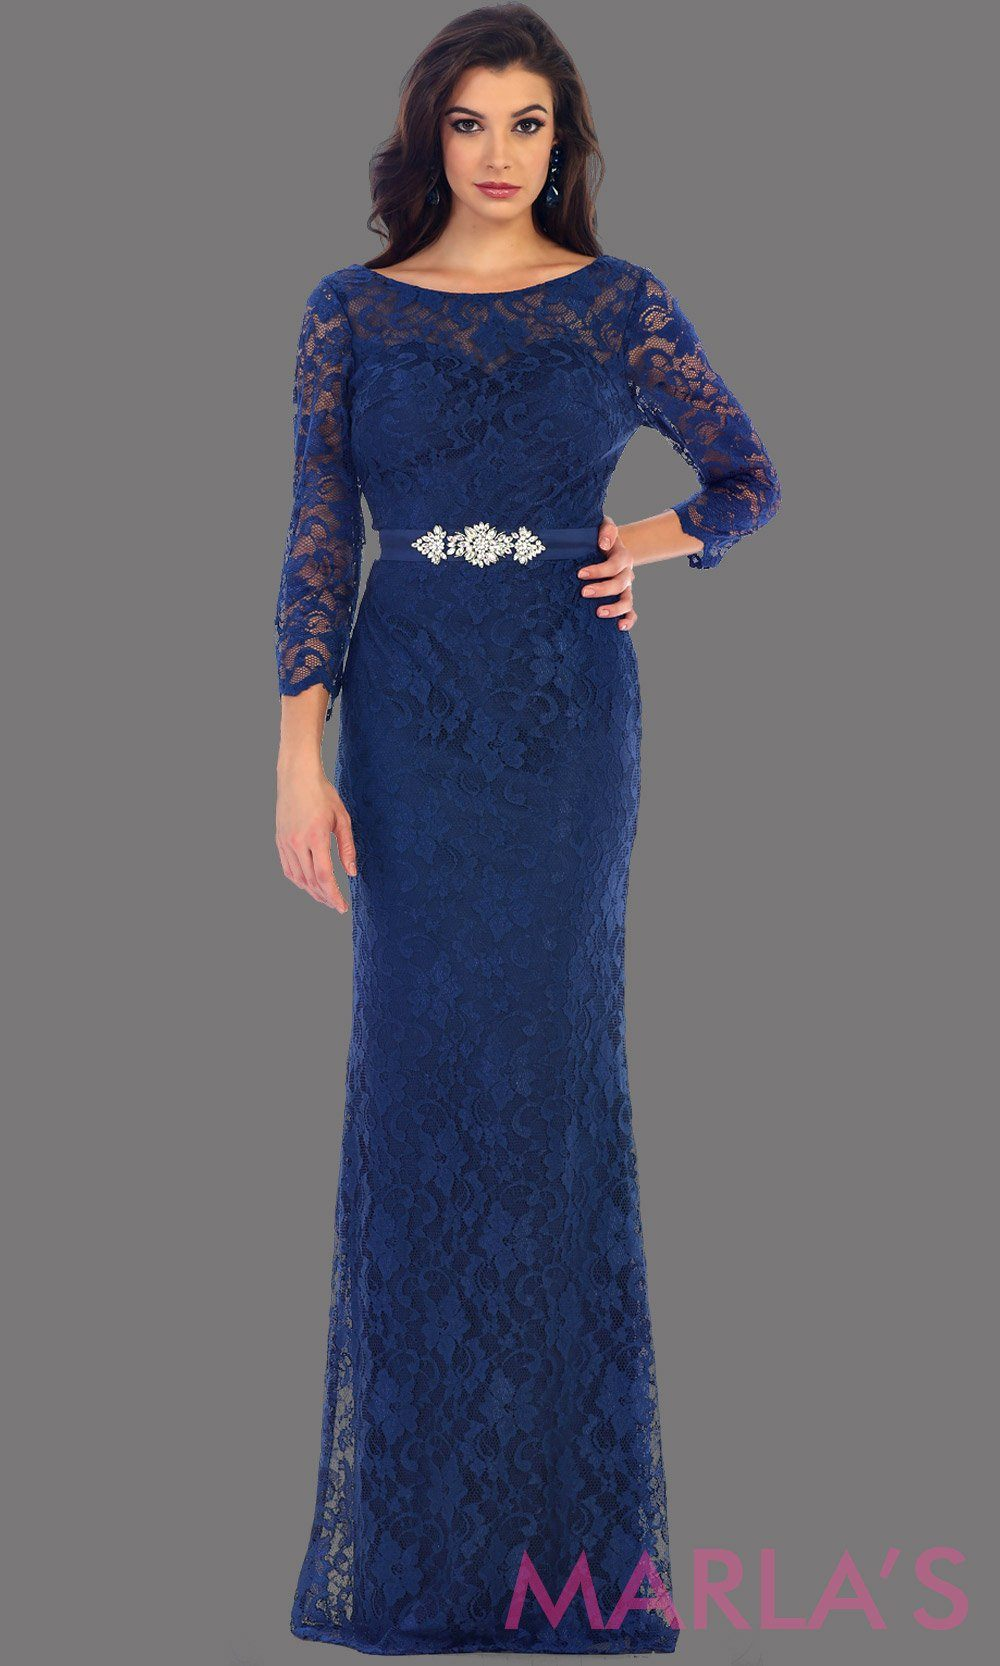 Long sleeve navy lace dress with detachable belt. This beautiful modest full length gown is a perfect bridesmaid dress, dark blue prom dress, simple bridal dress. Available in plus sizes